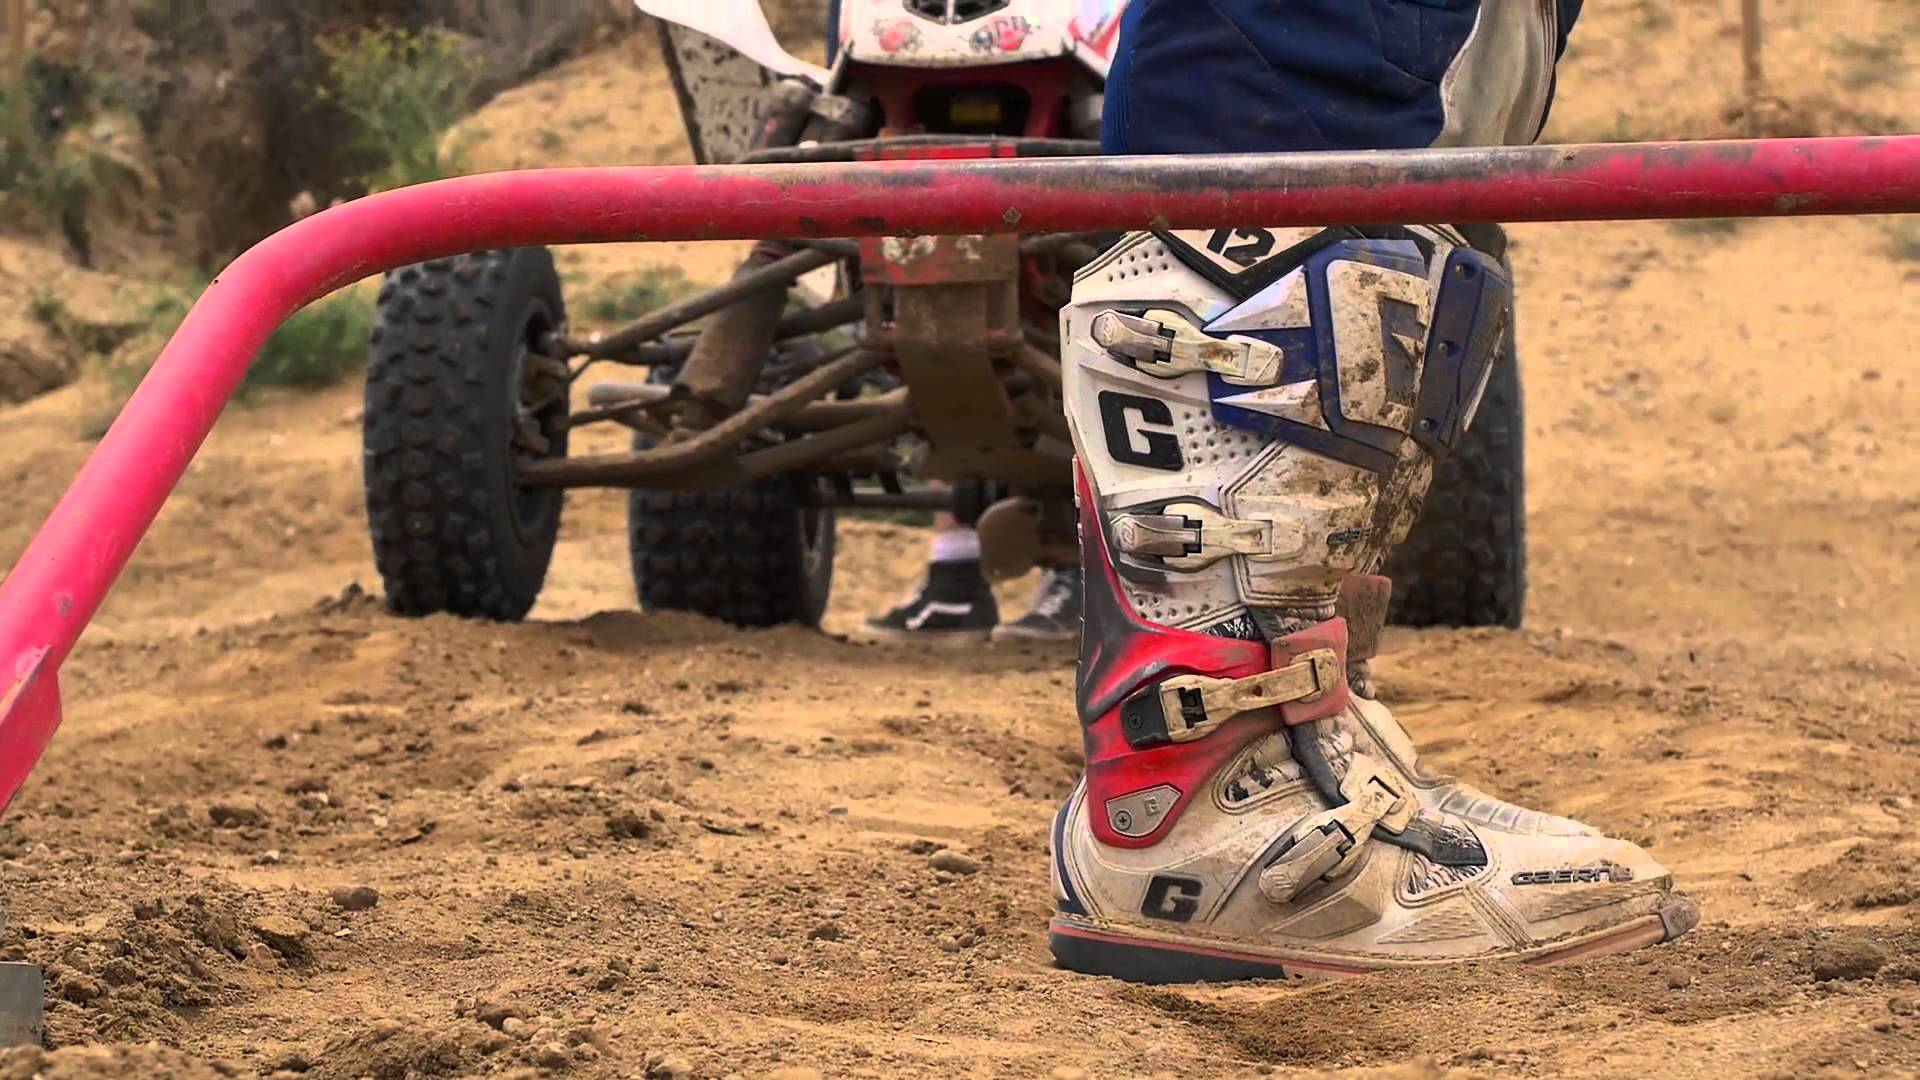 ATV Motocross Pics, Sports Collection